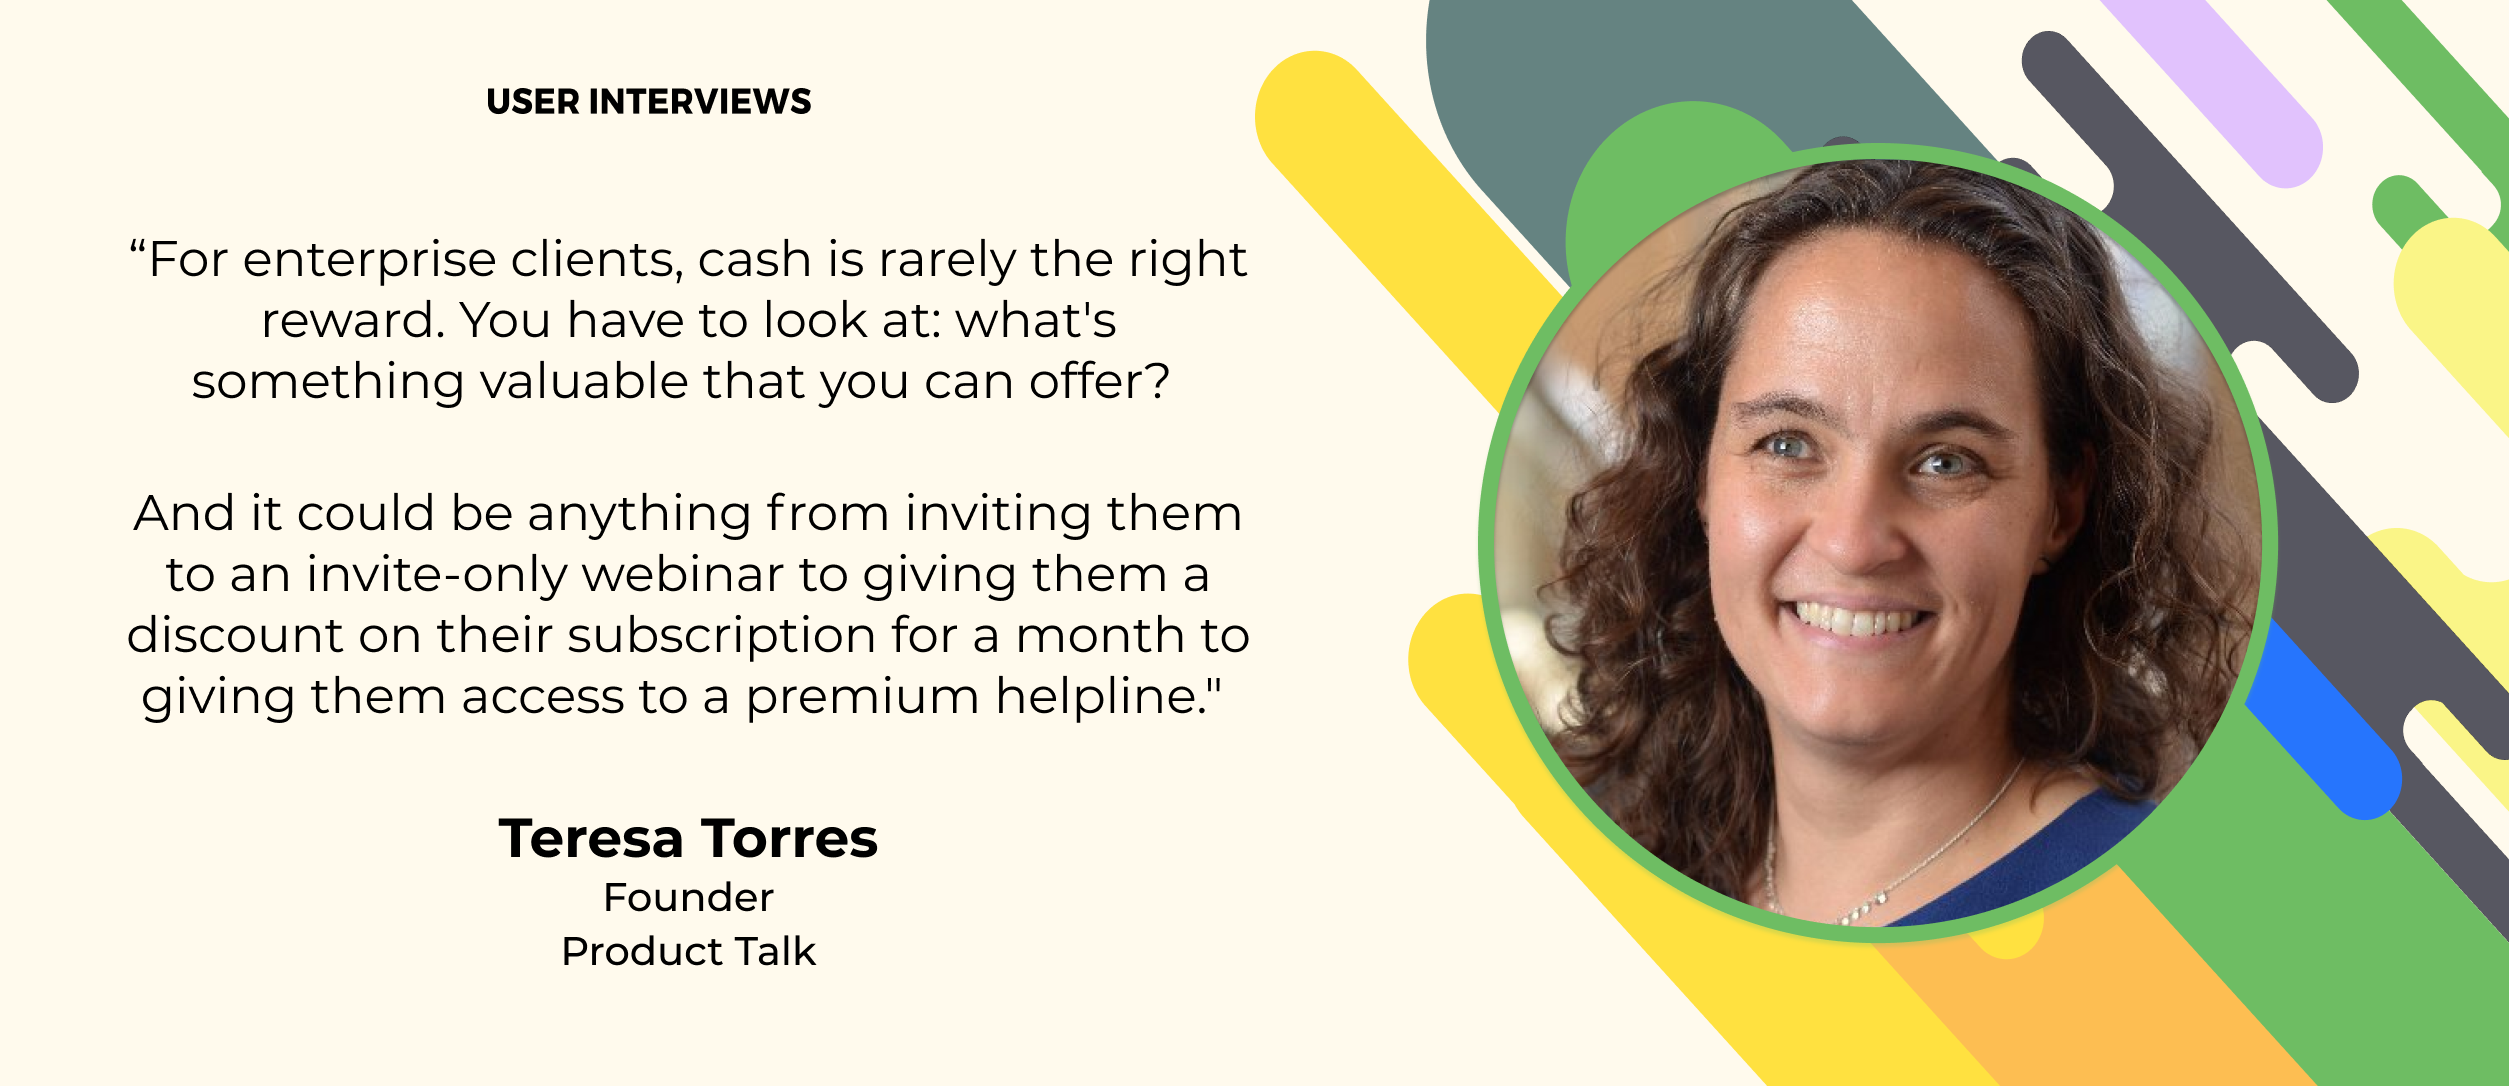 user research quote about study incentives by teresa torres the founder of product talk